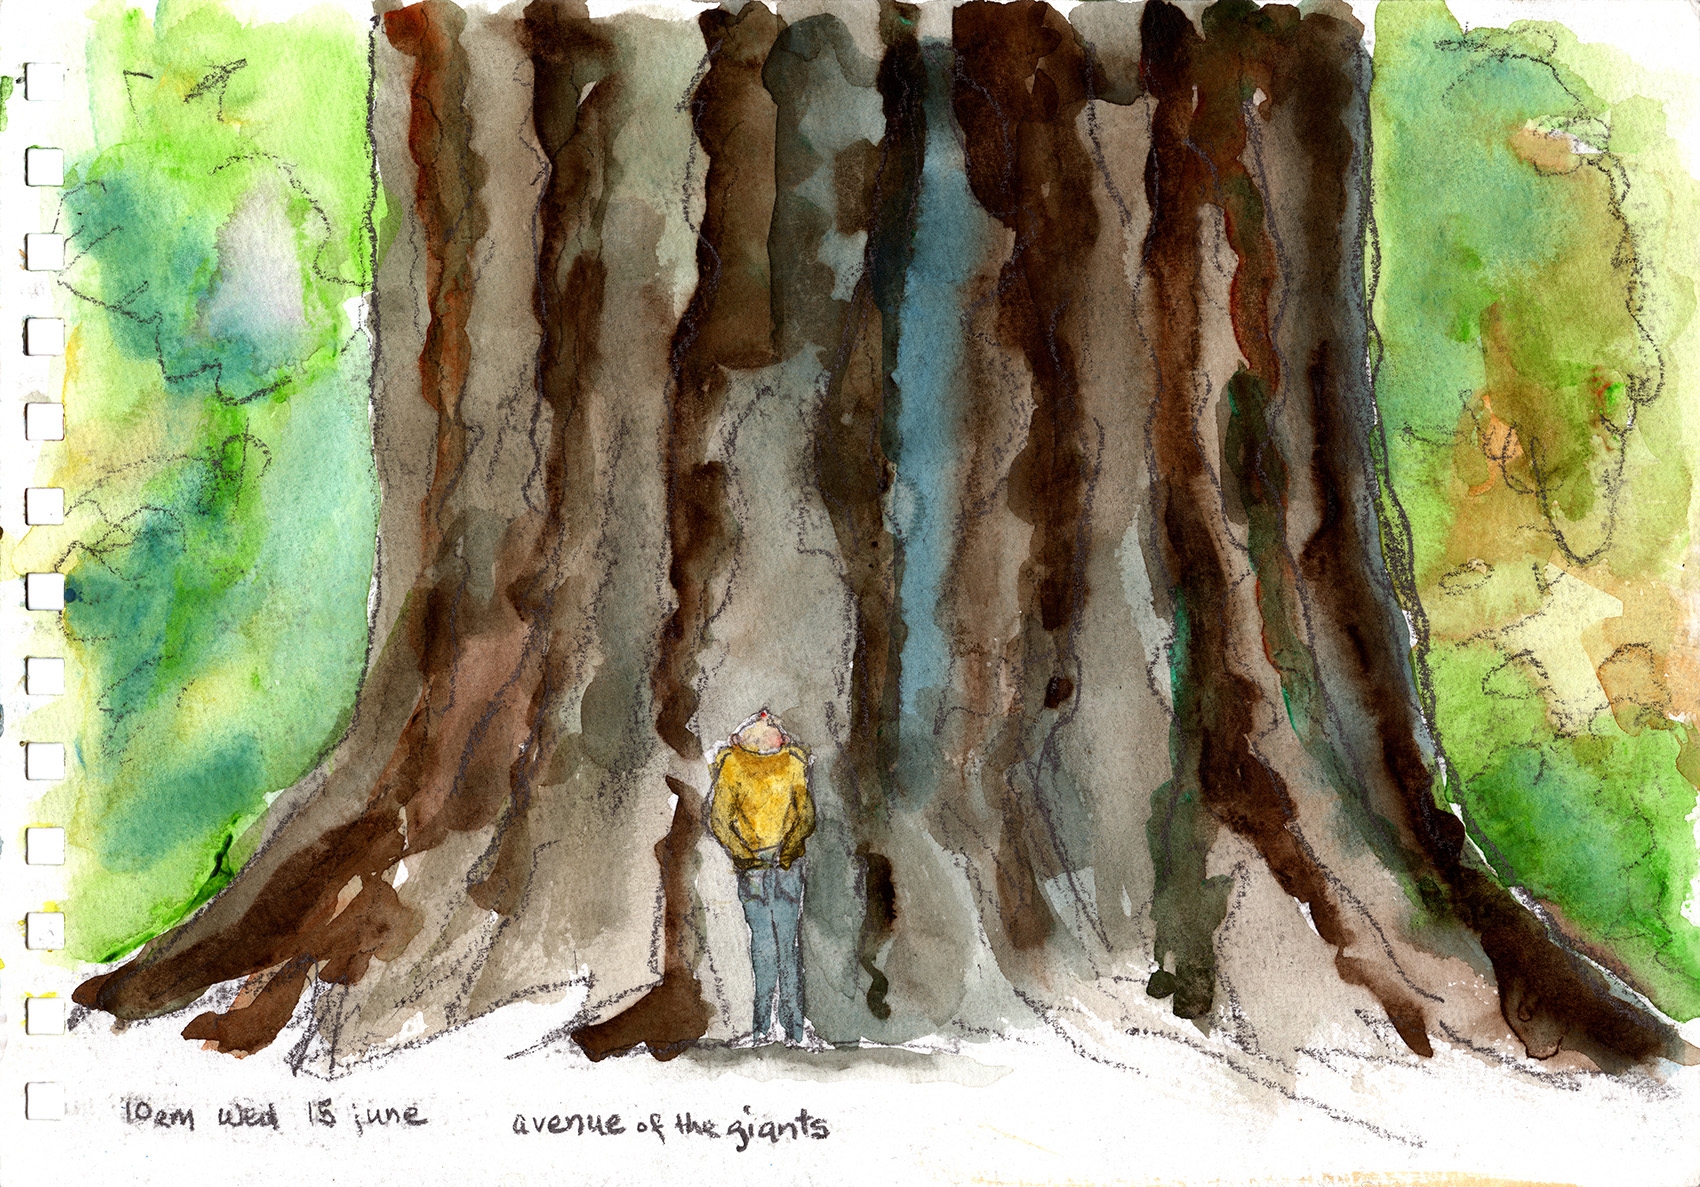 avenue of the giants 10am wed 18 june